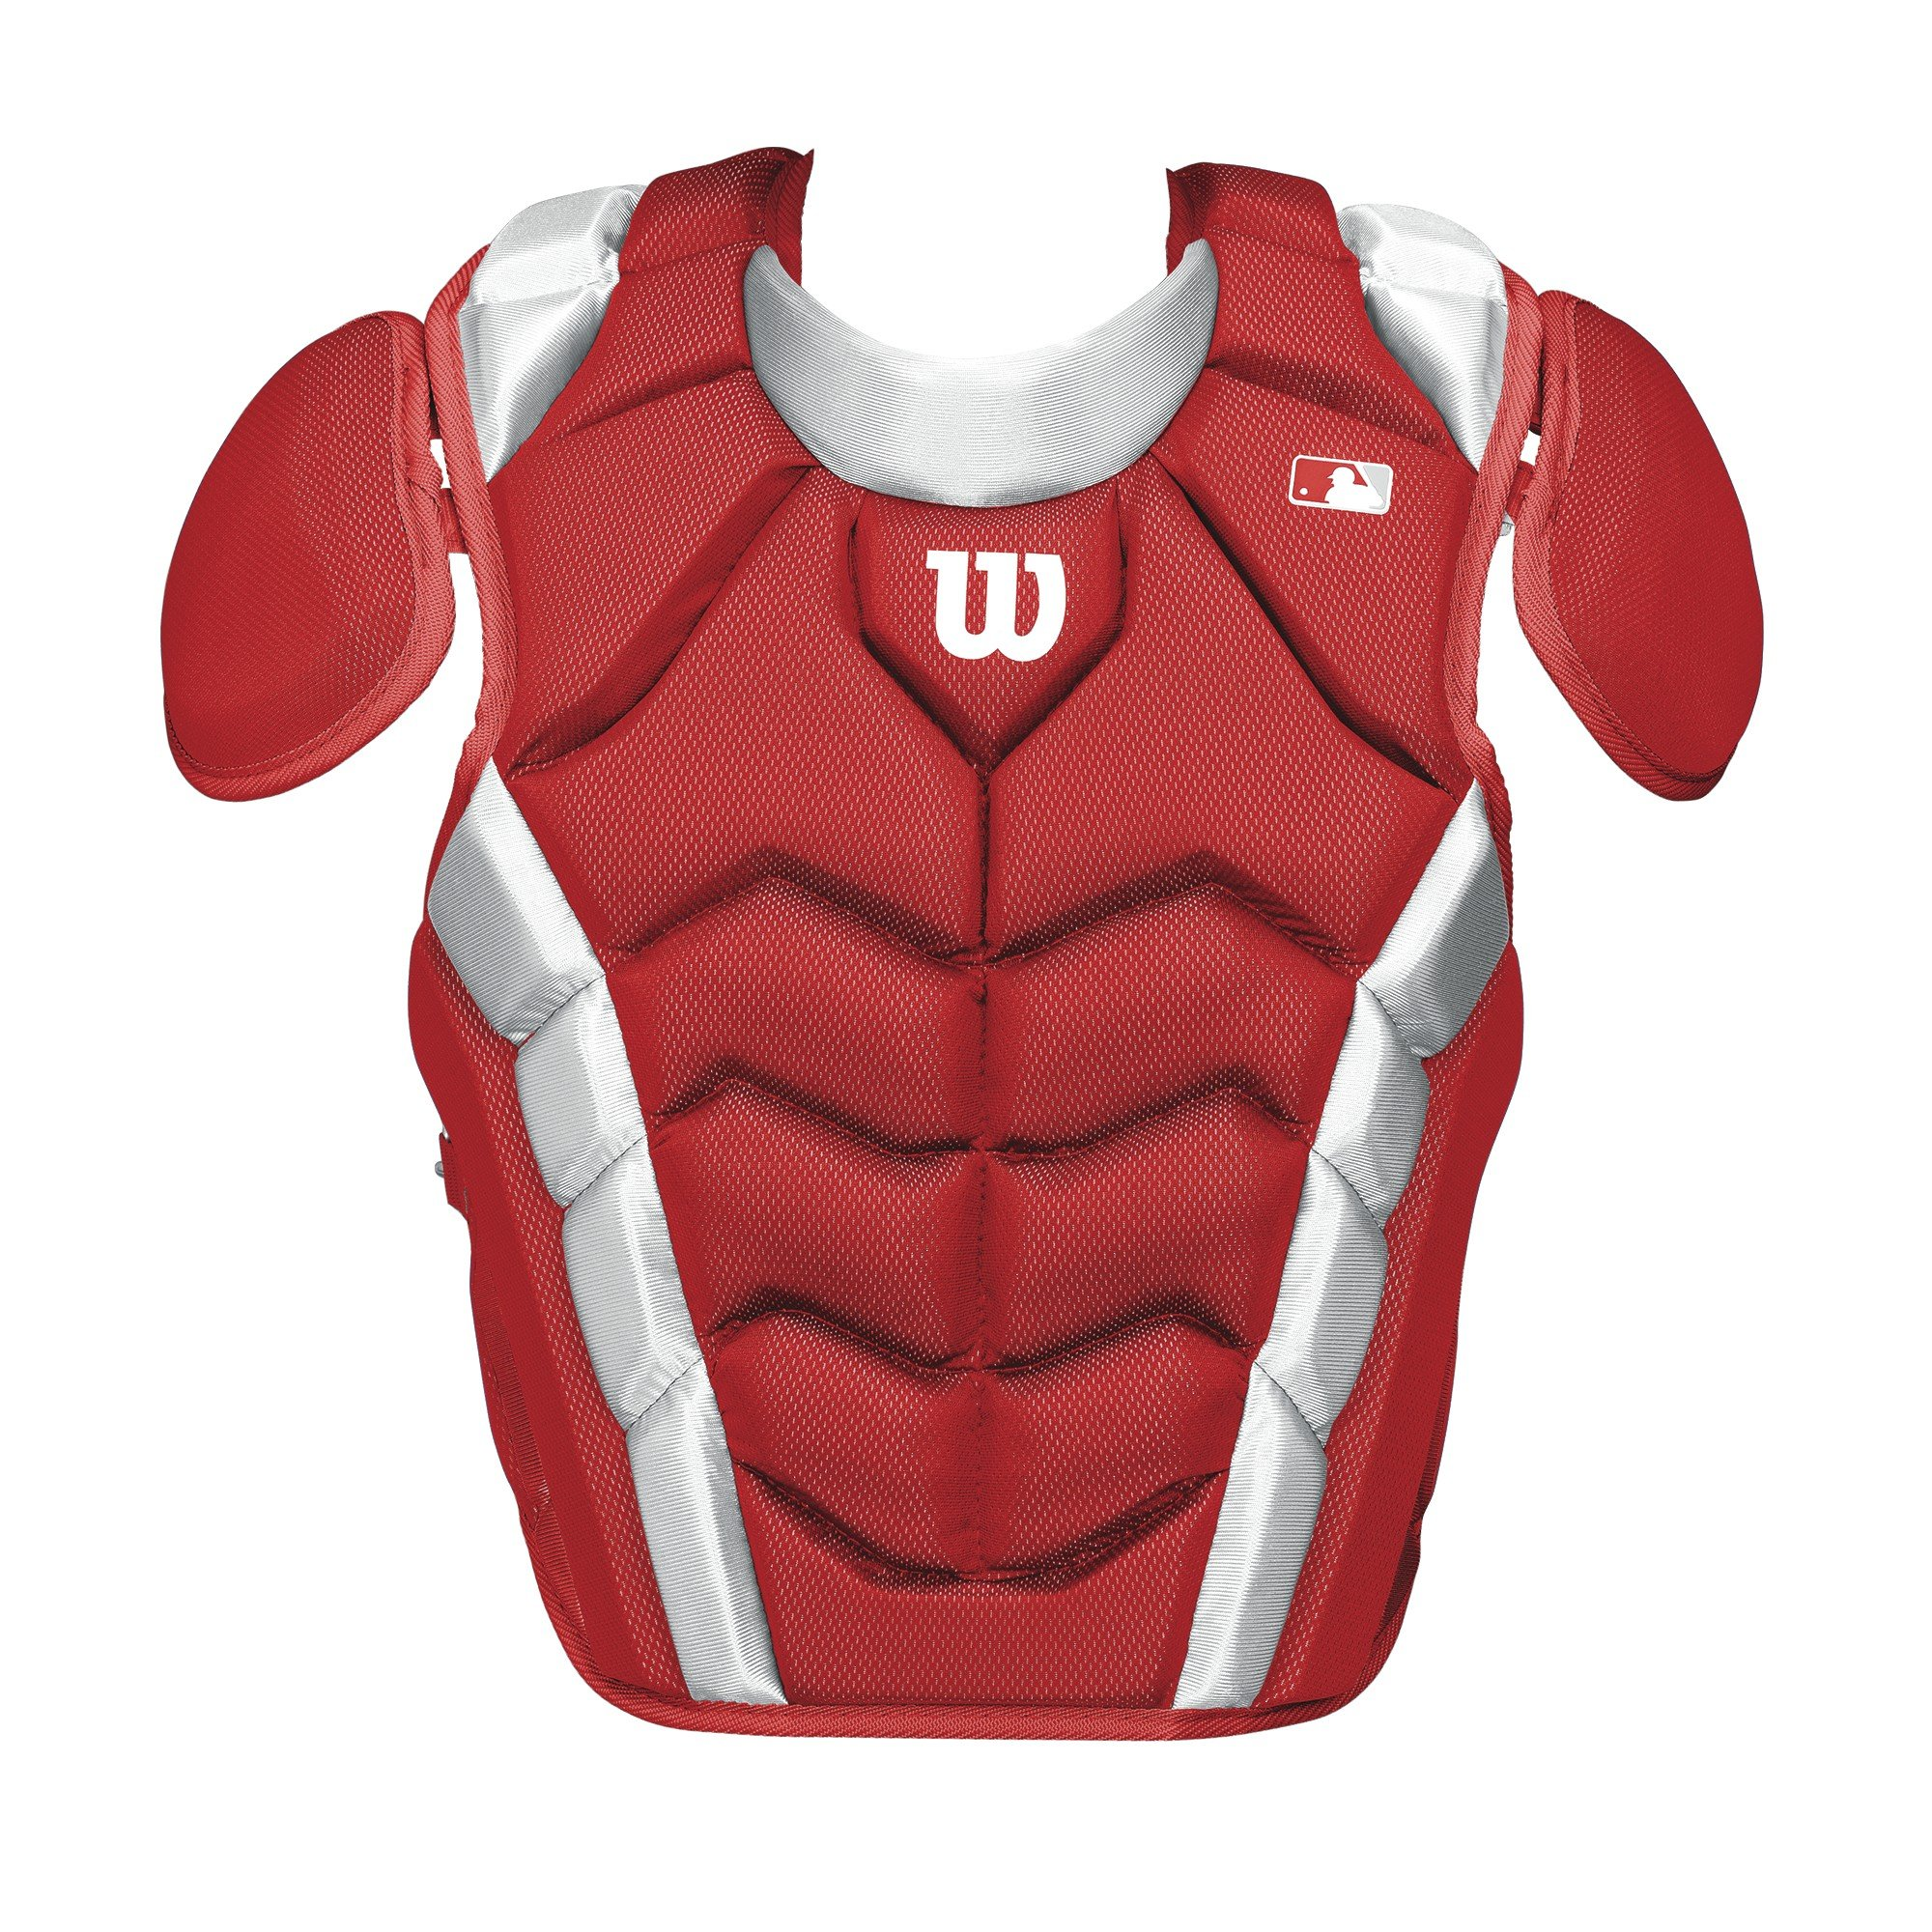 Wilson Pro Stock Chest Protector, Scarlet, 15.5''